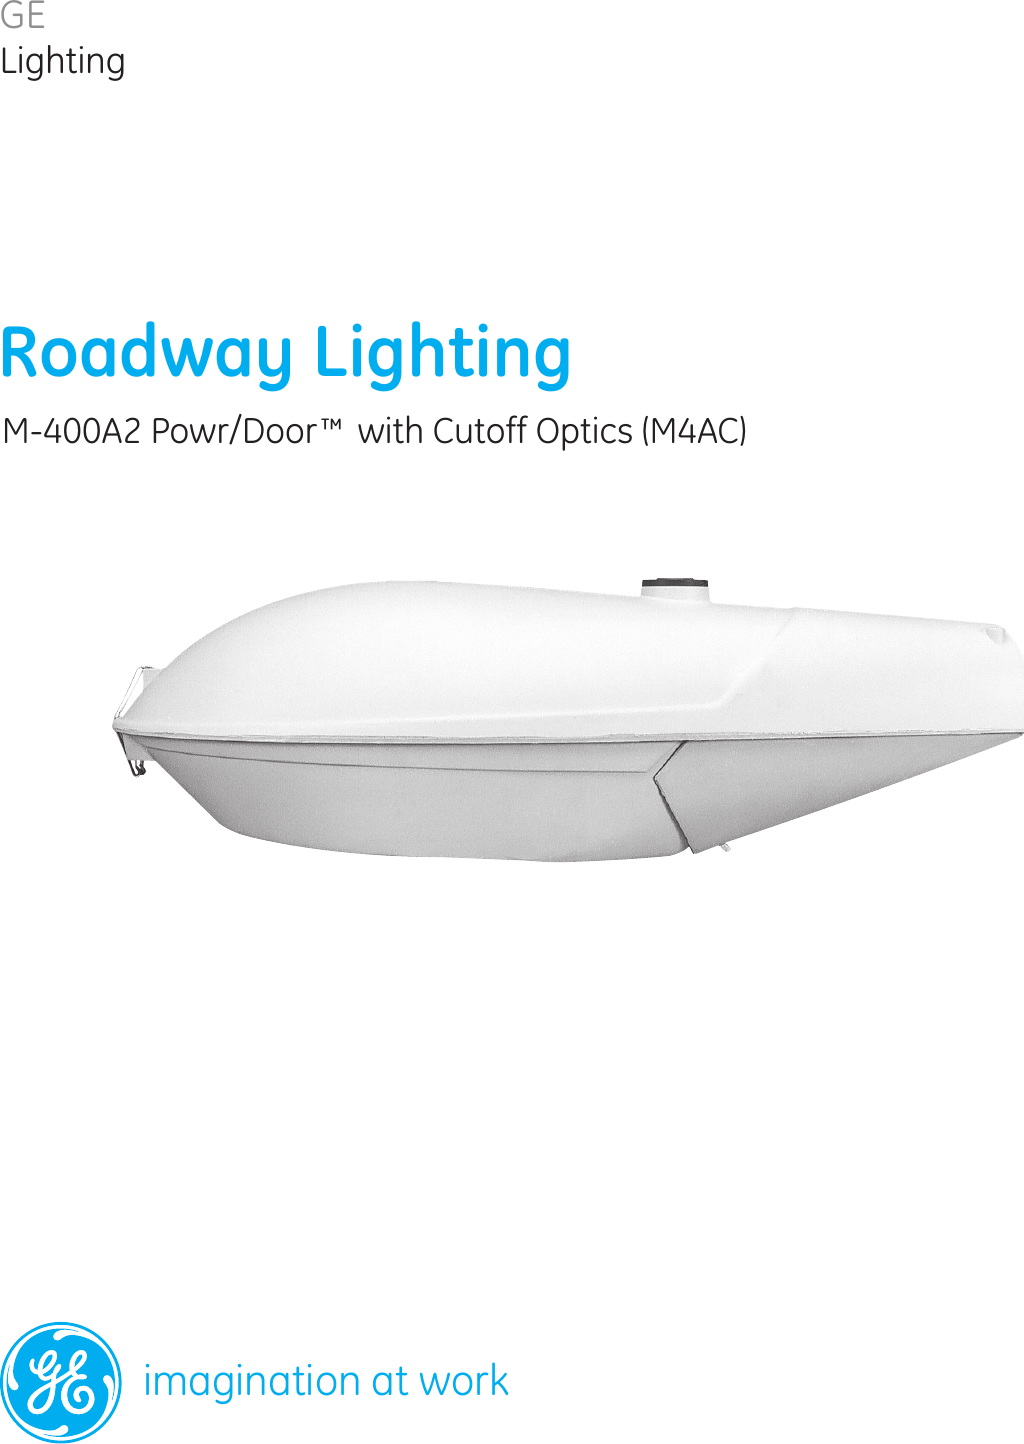 GE Roadway Lighting M4AC M400A2 Power Door With Cut Off u2014 Data Sheet | OLP2928  sc 1 st  UserManual.wiki & GE Roadway Lighting M4AC M400A2 Power Door With Cut Off u2014 Data Sheet ...